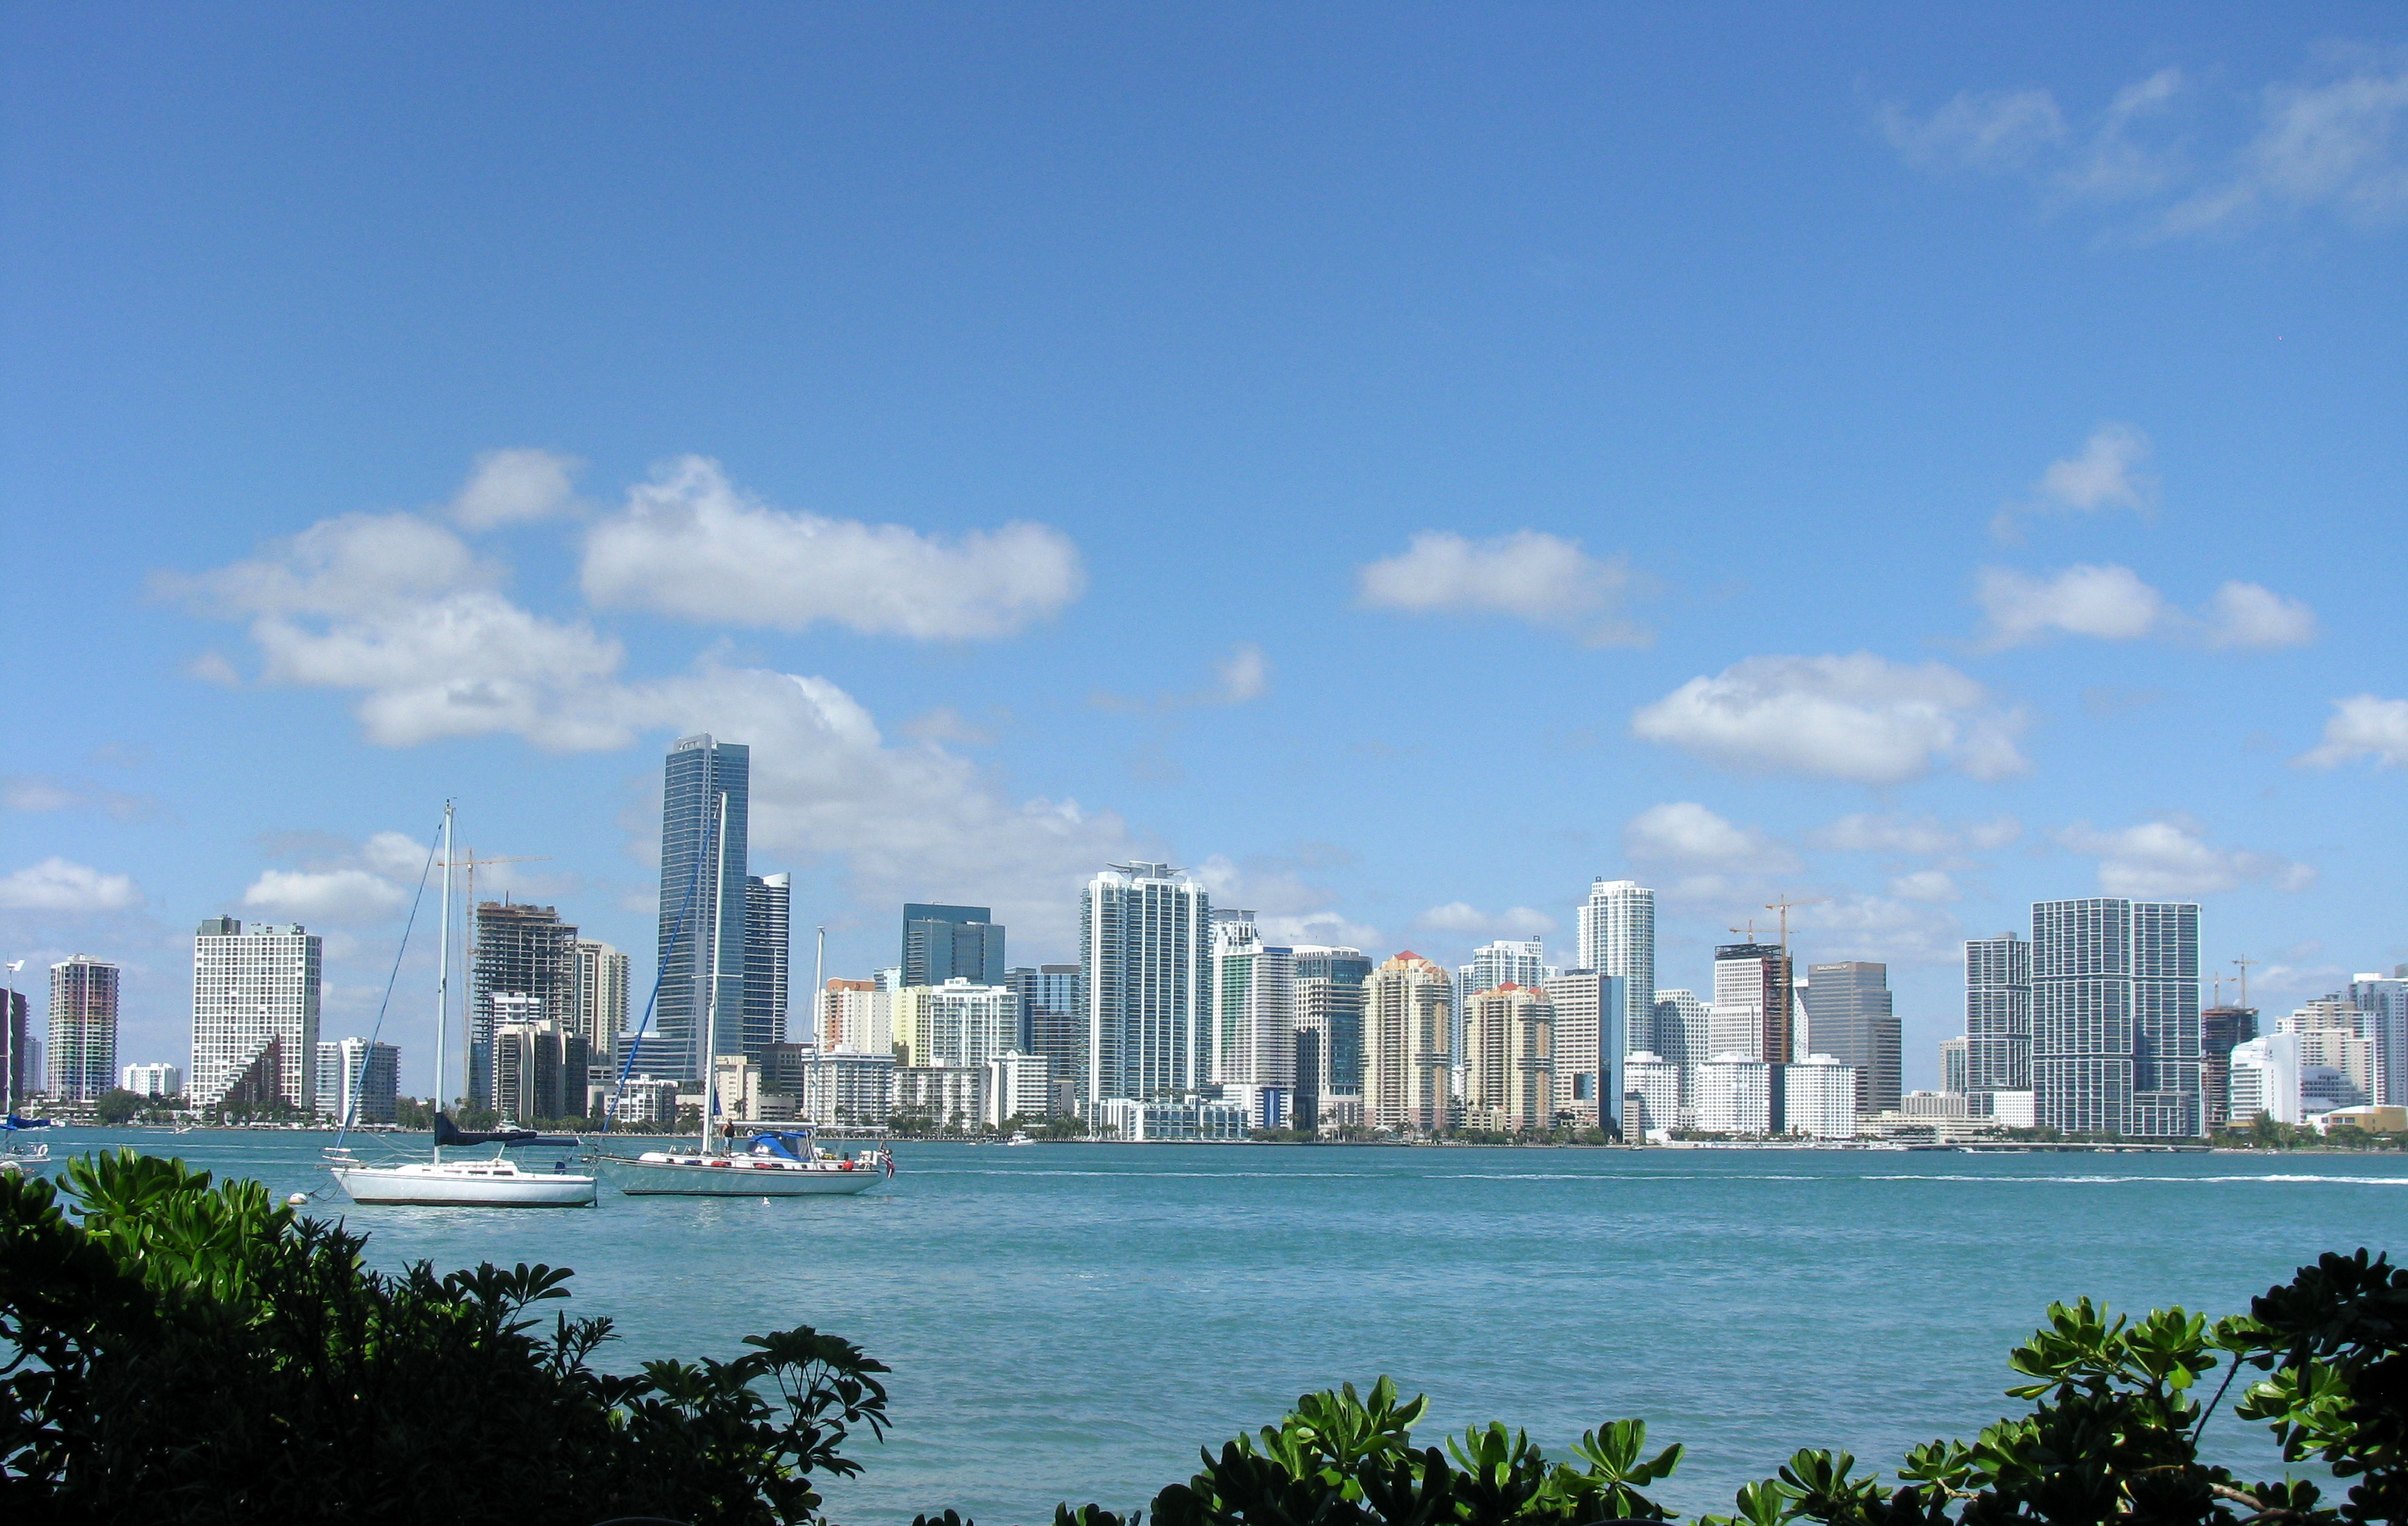 Miami skyline. Photo by: Captain Tucker / Wikimedia Commons